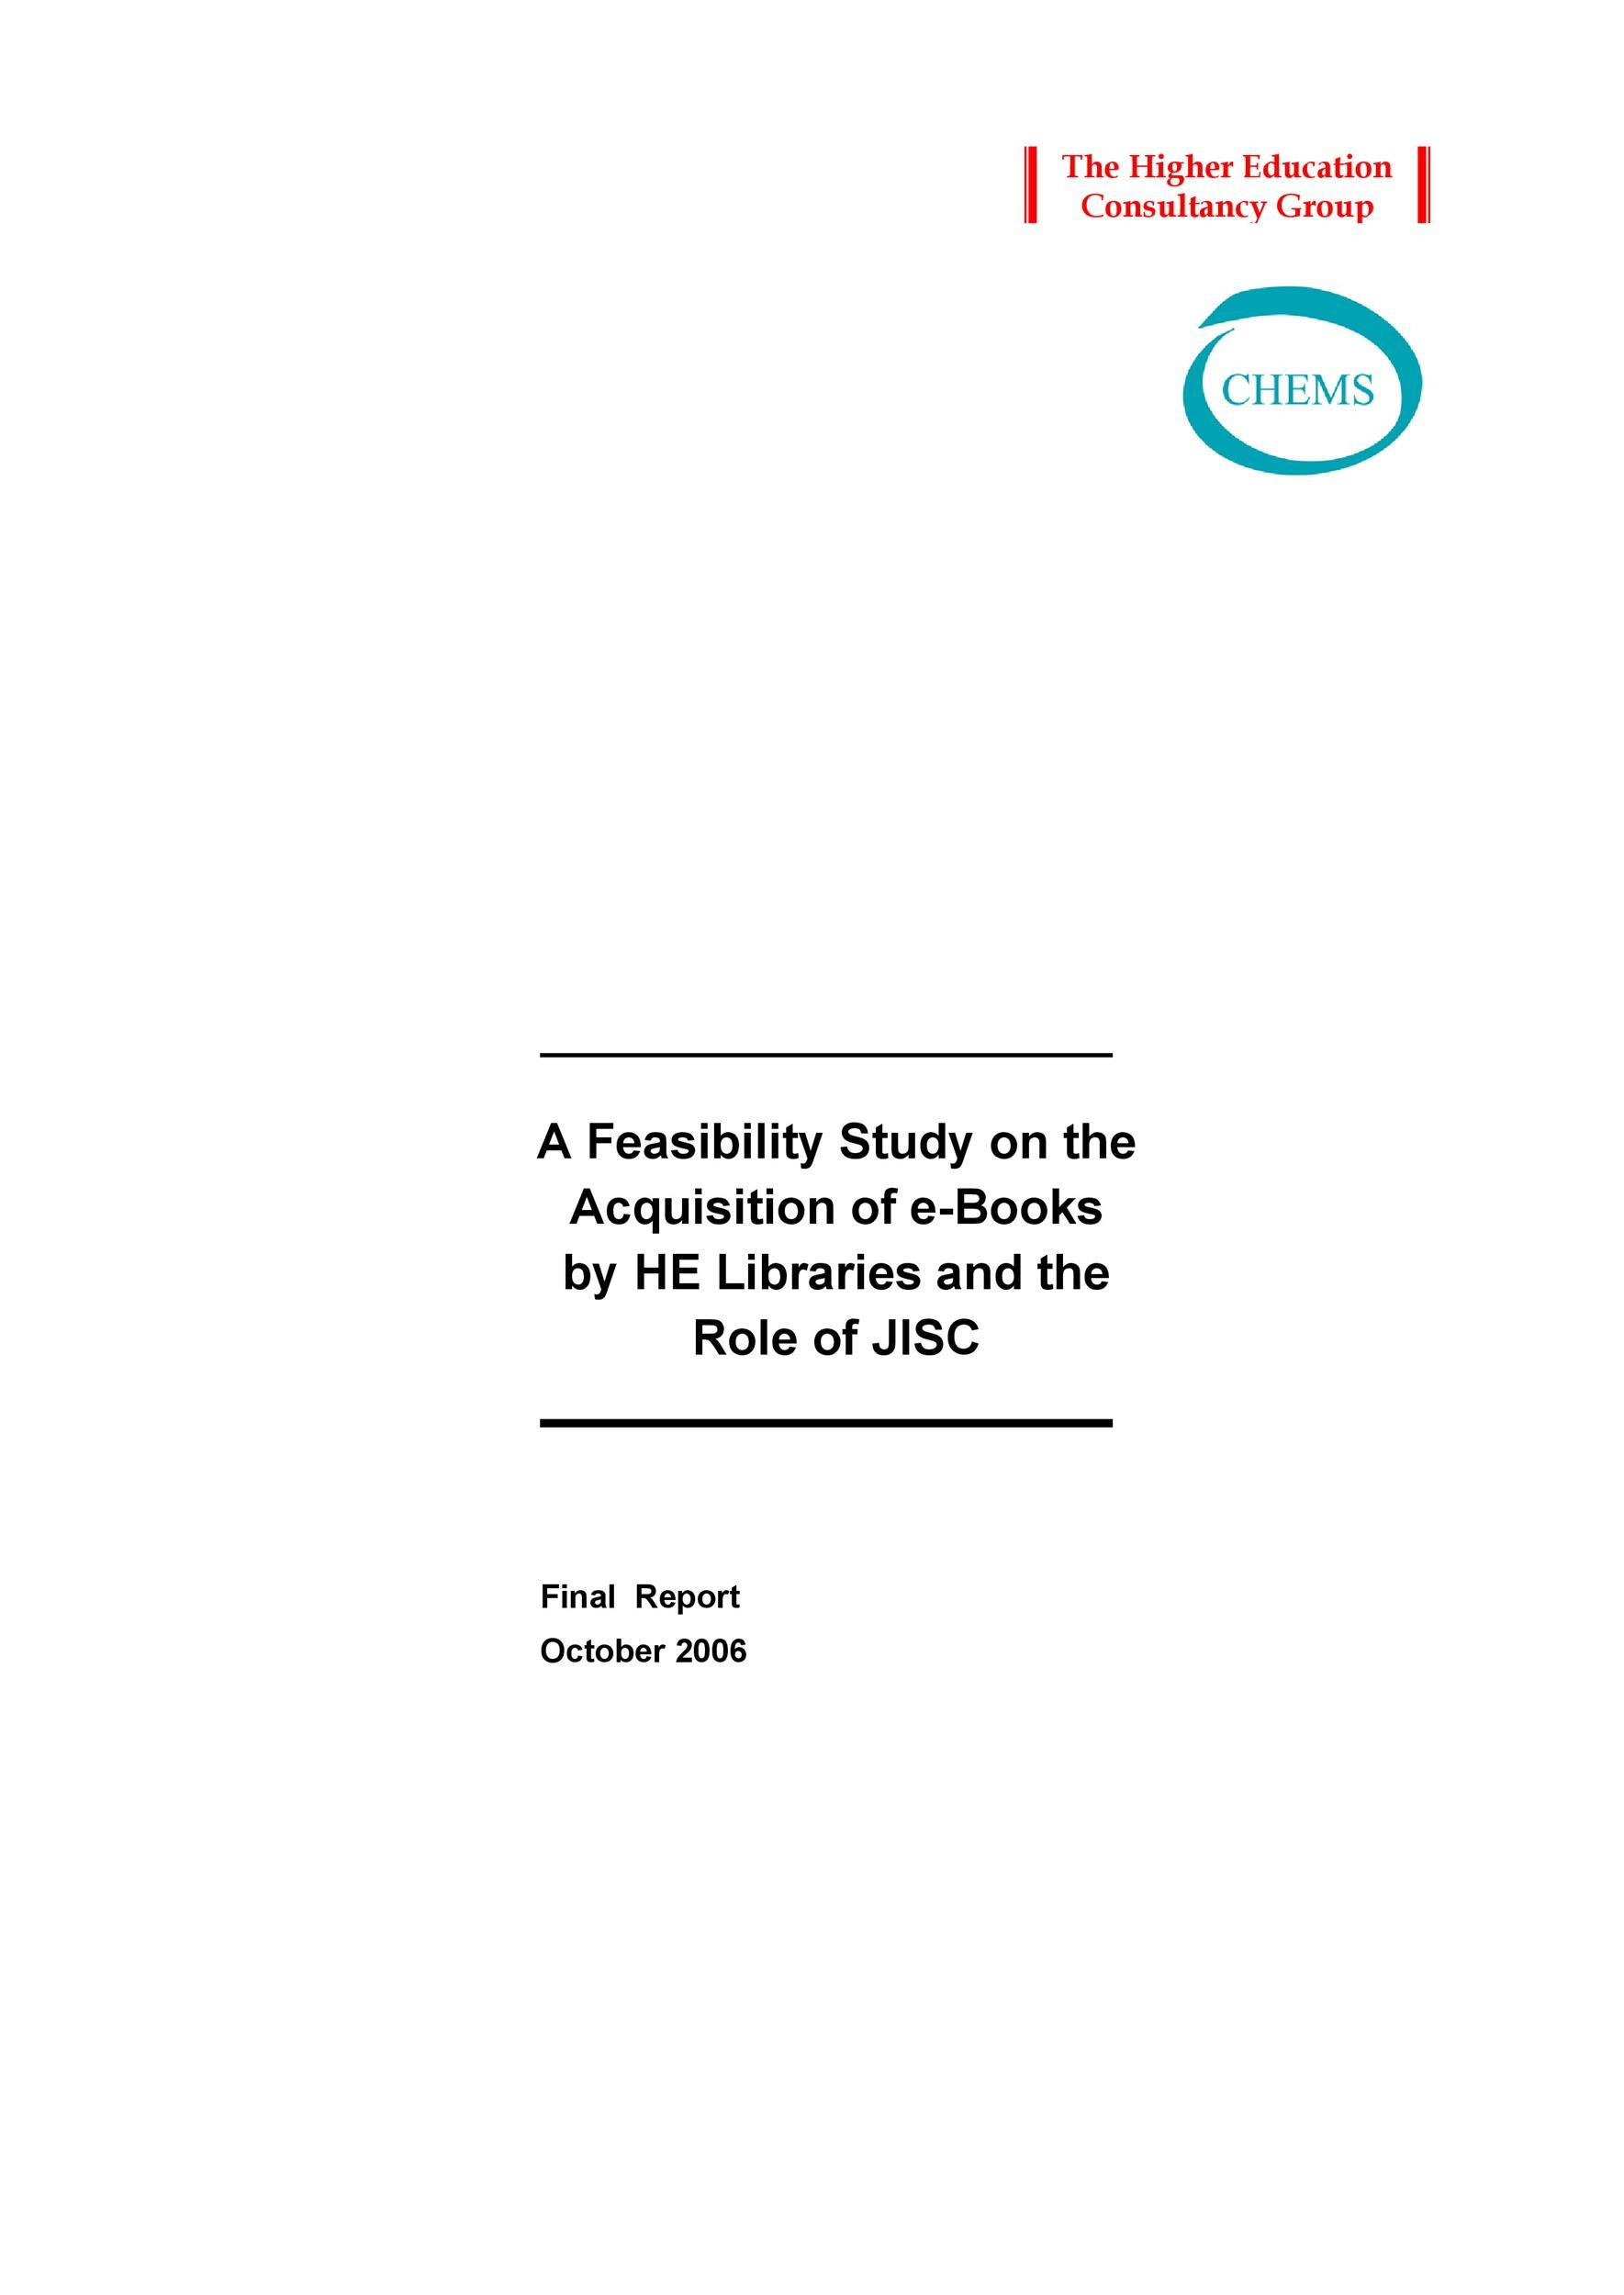 Free feasibility study example 04